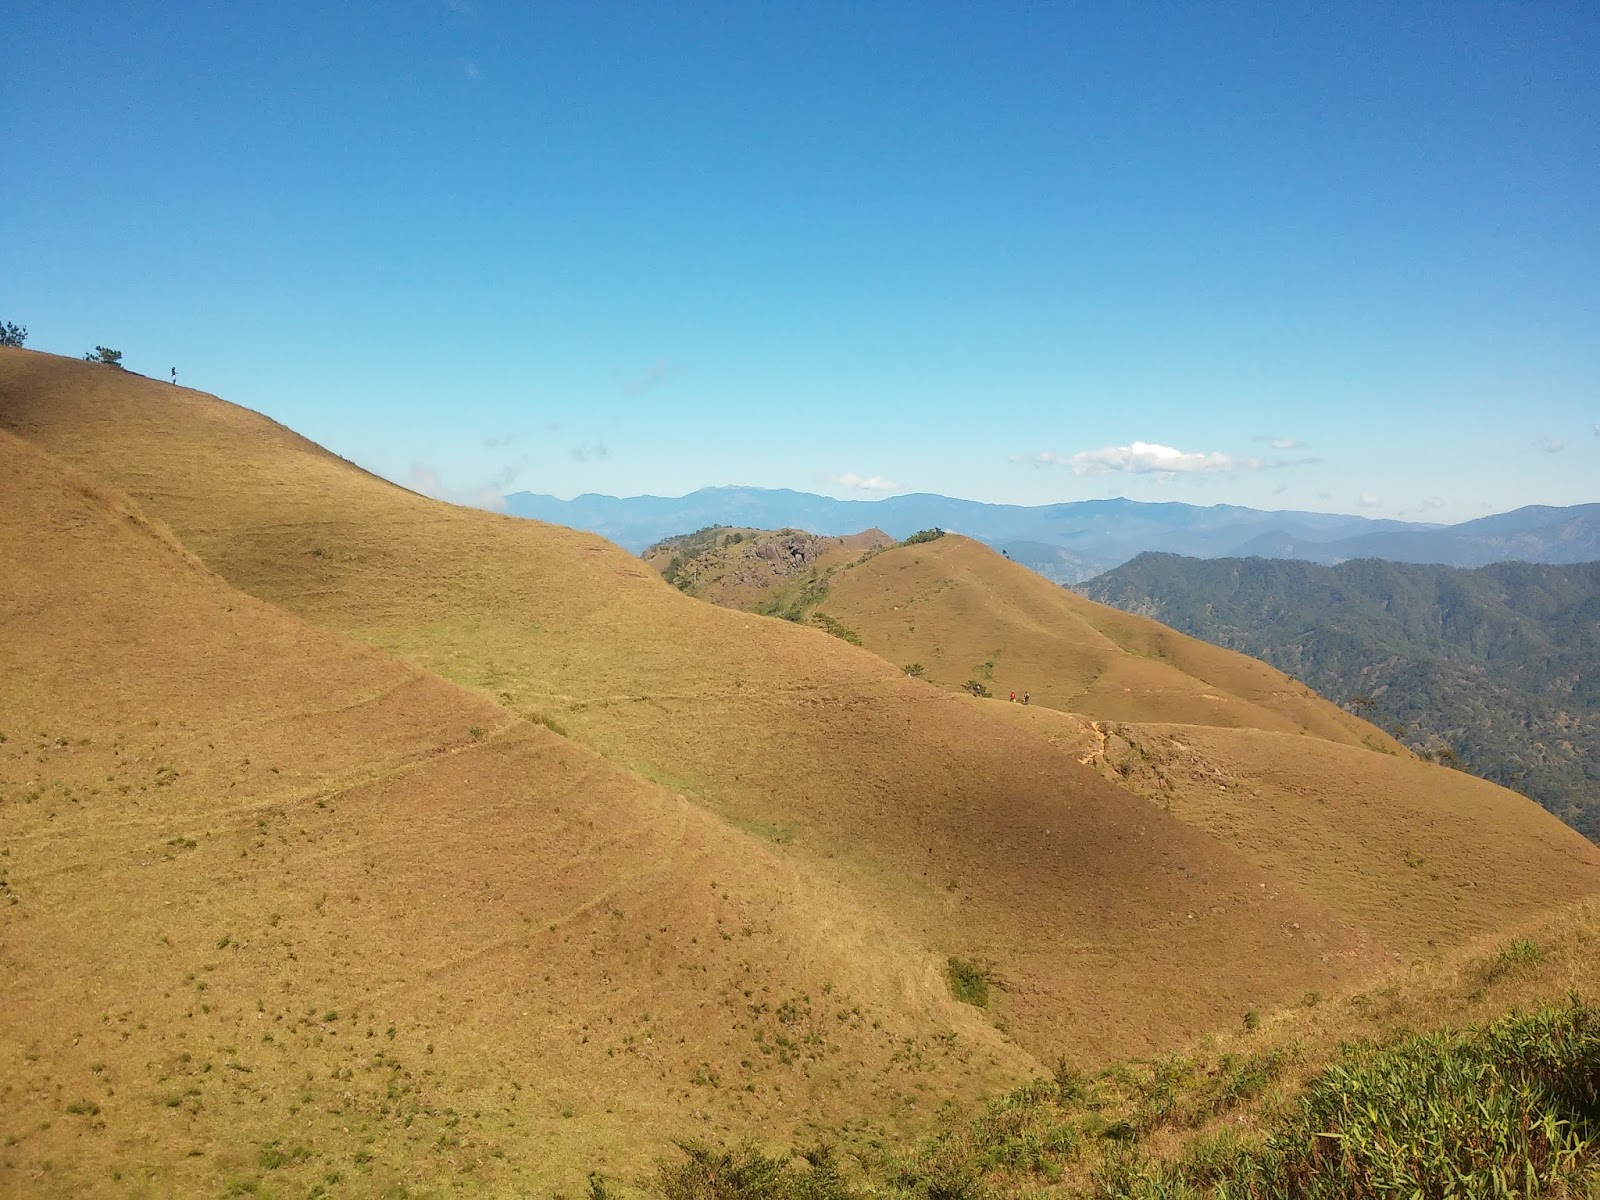 Ambunao Paoay Grasslands - Mt. Ulap